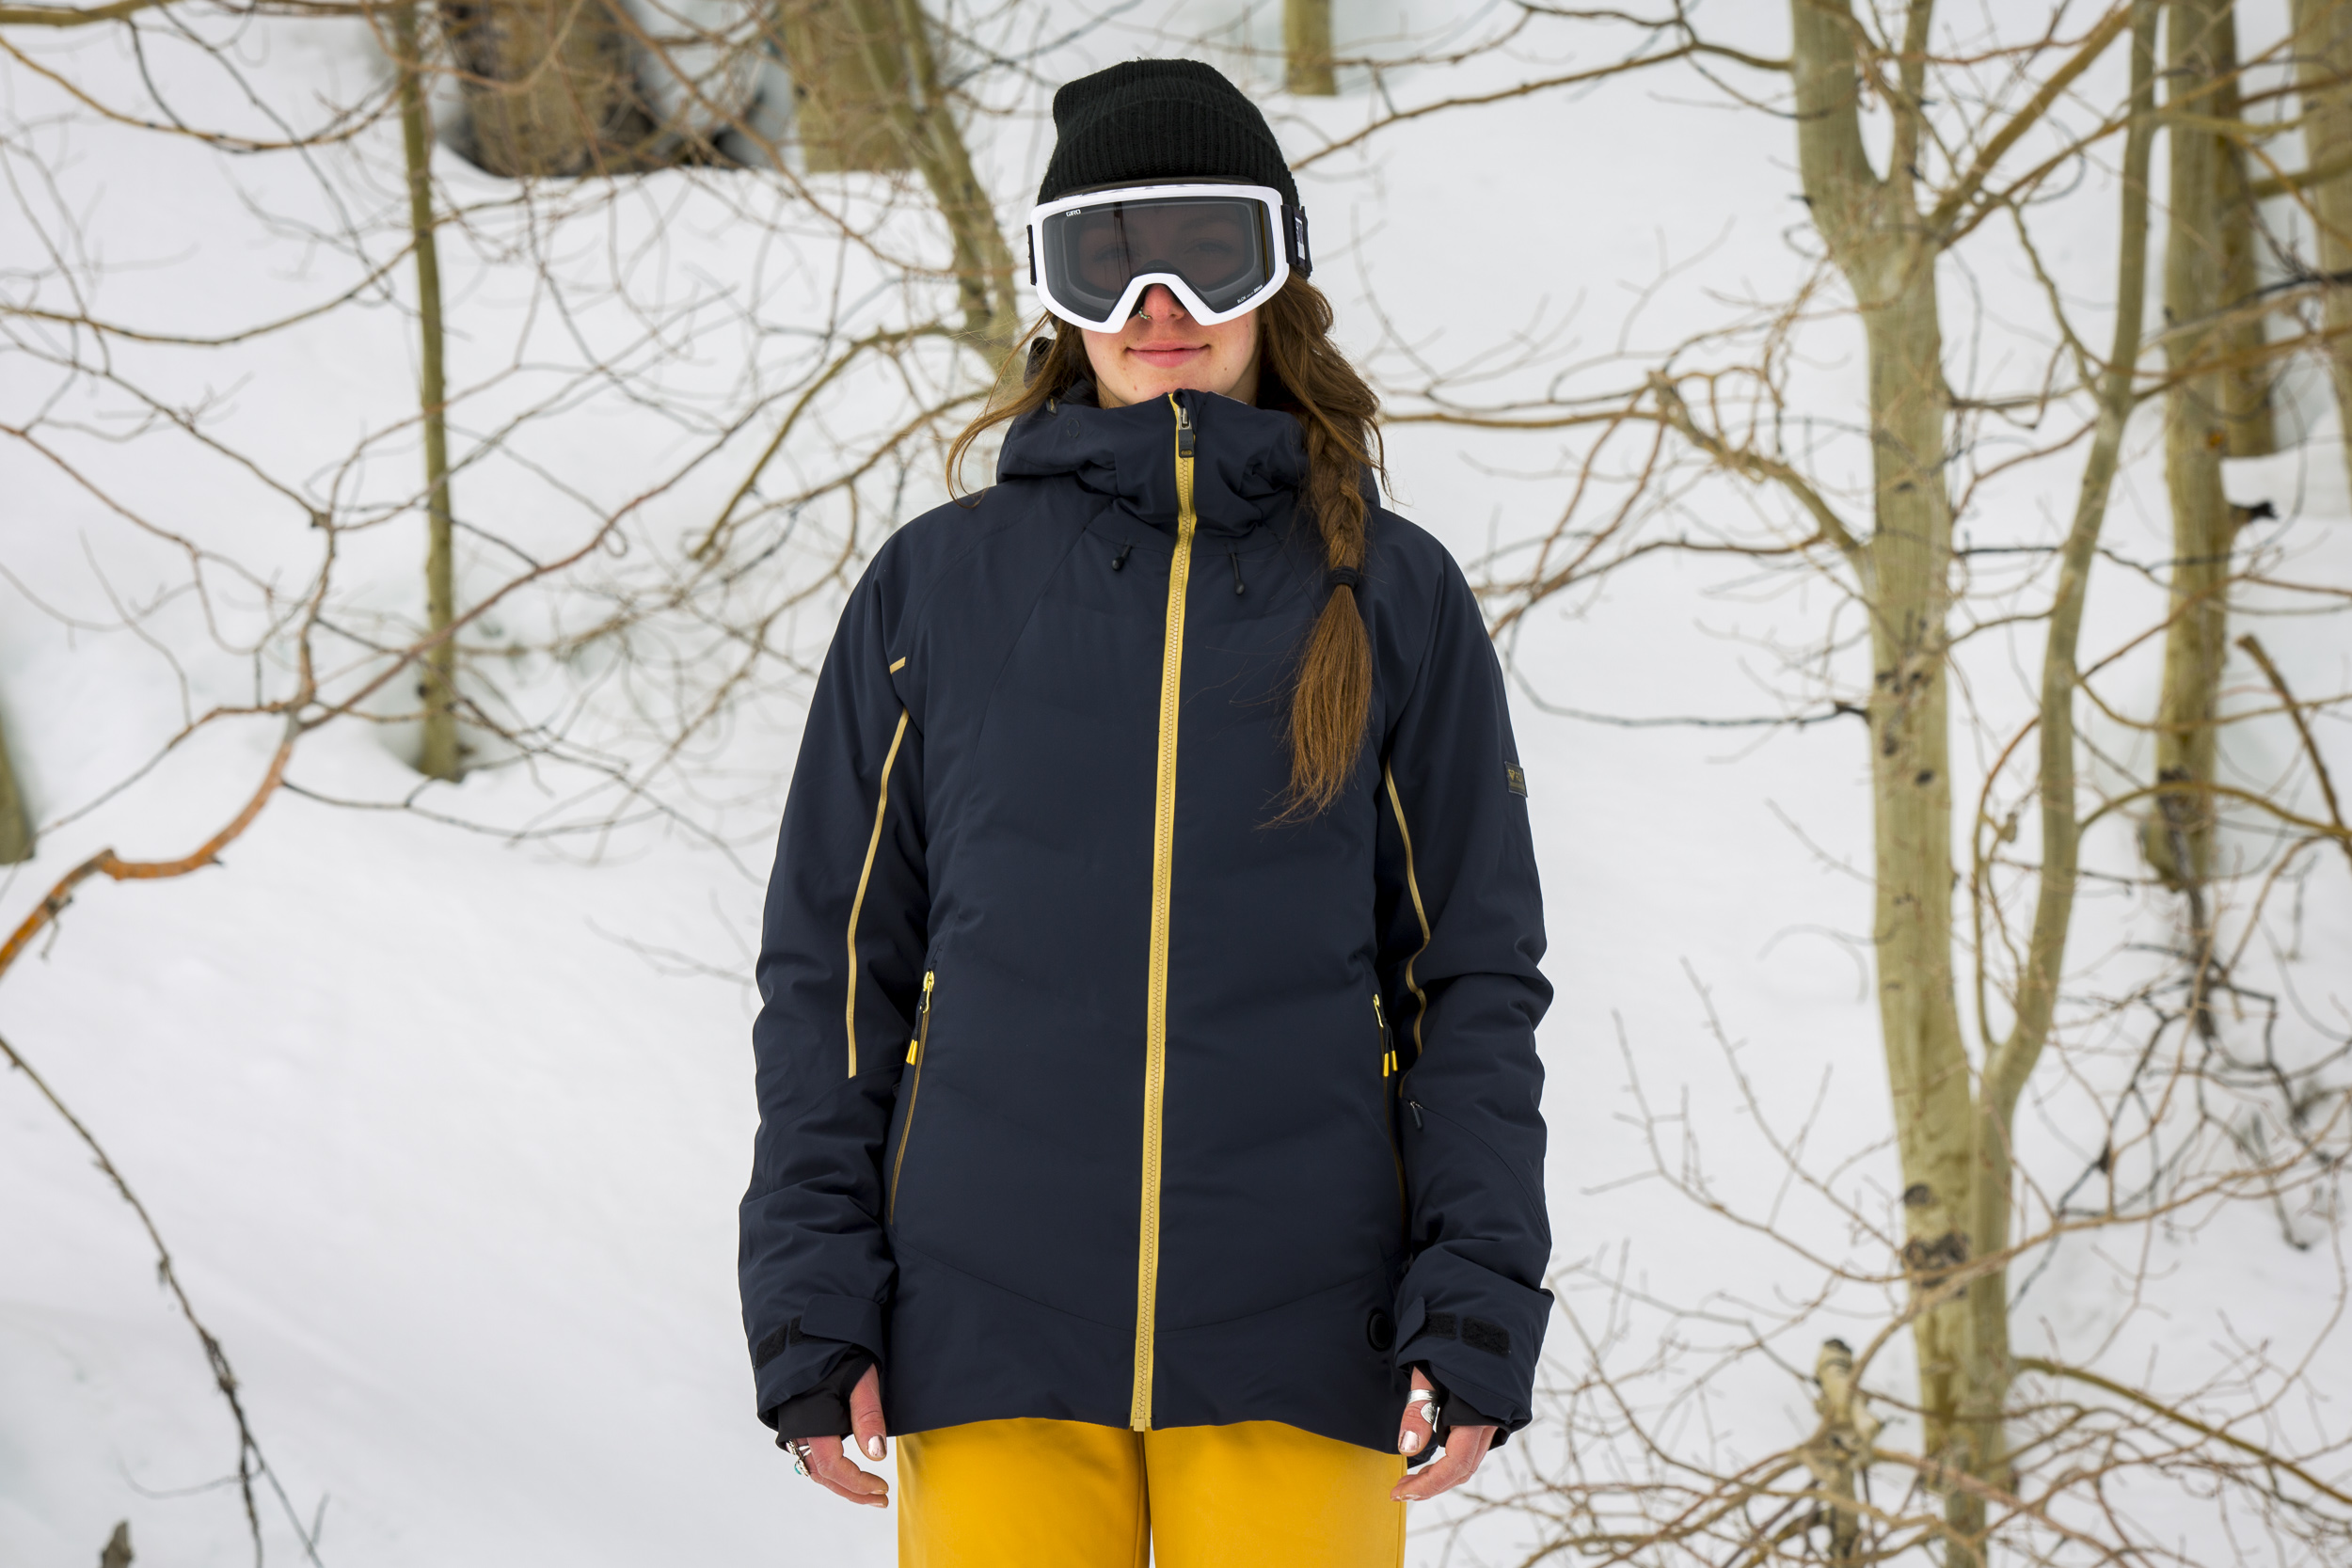 Roxy Highliners Aspen ChrisWellhausen 132